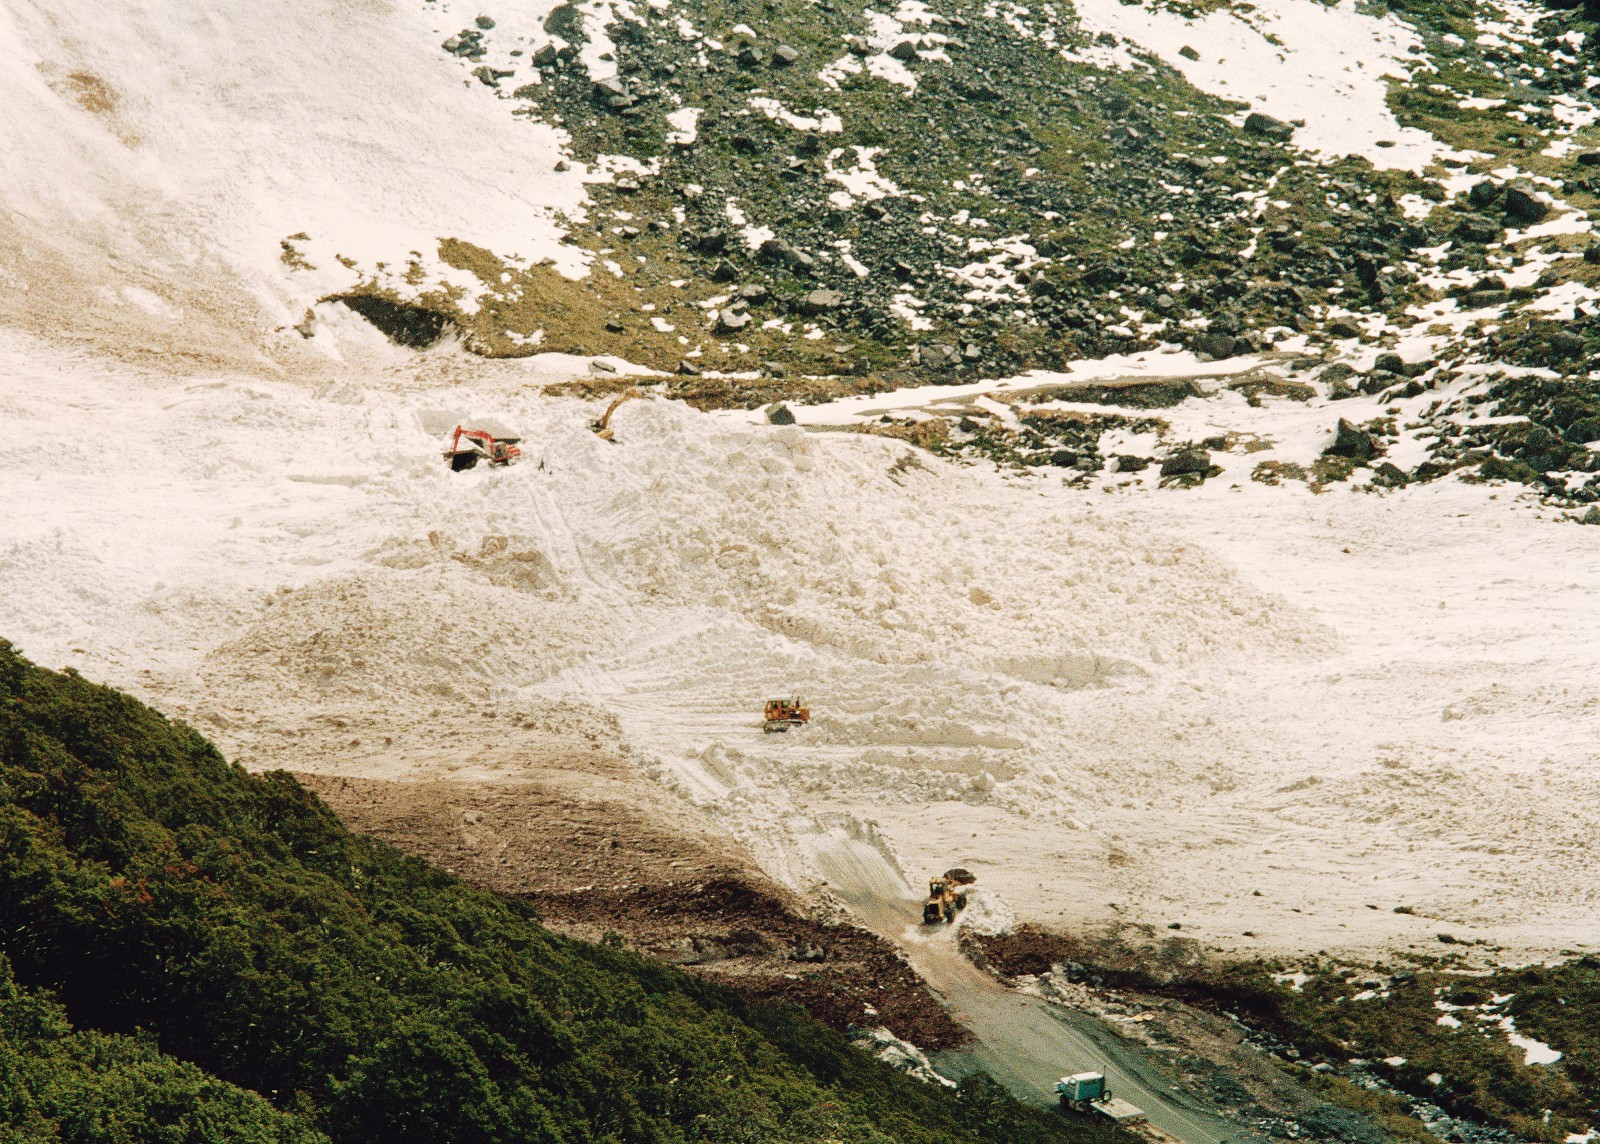 Although it may take days to clear the spoil from a large avalanche, an equal hazard is posed by the very violent wind blast associated with many avalanches. These have the power to rupture eardrums, strip bark from trees (to say nothing of flattening forests) and throw heavy machinery around like playthings. Between 50 and 150 avalanches-both natural and deliberately detonated-take place along the upper Hollyford each year.